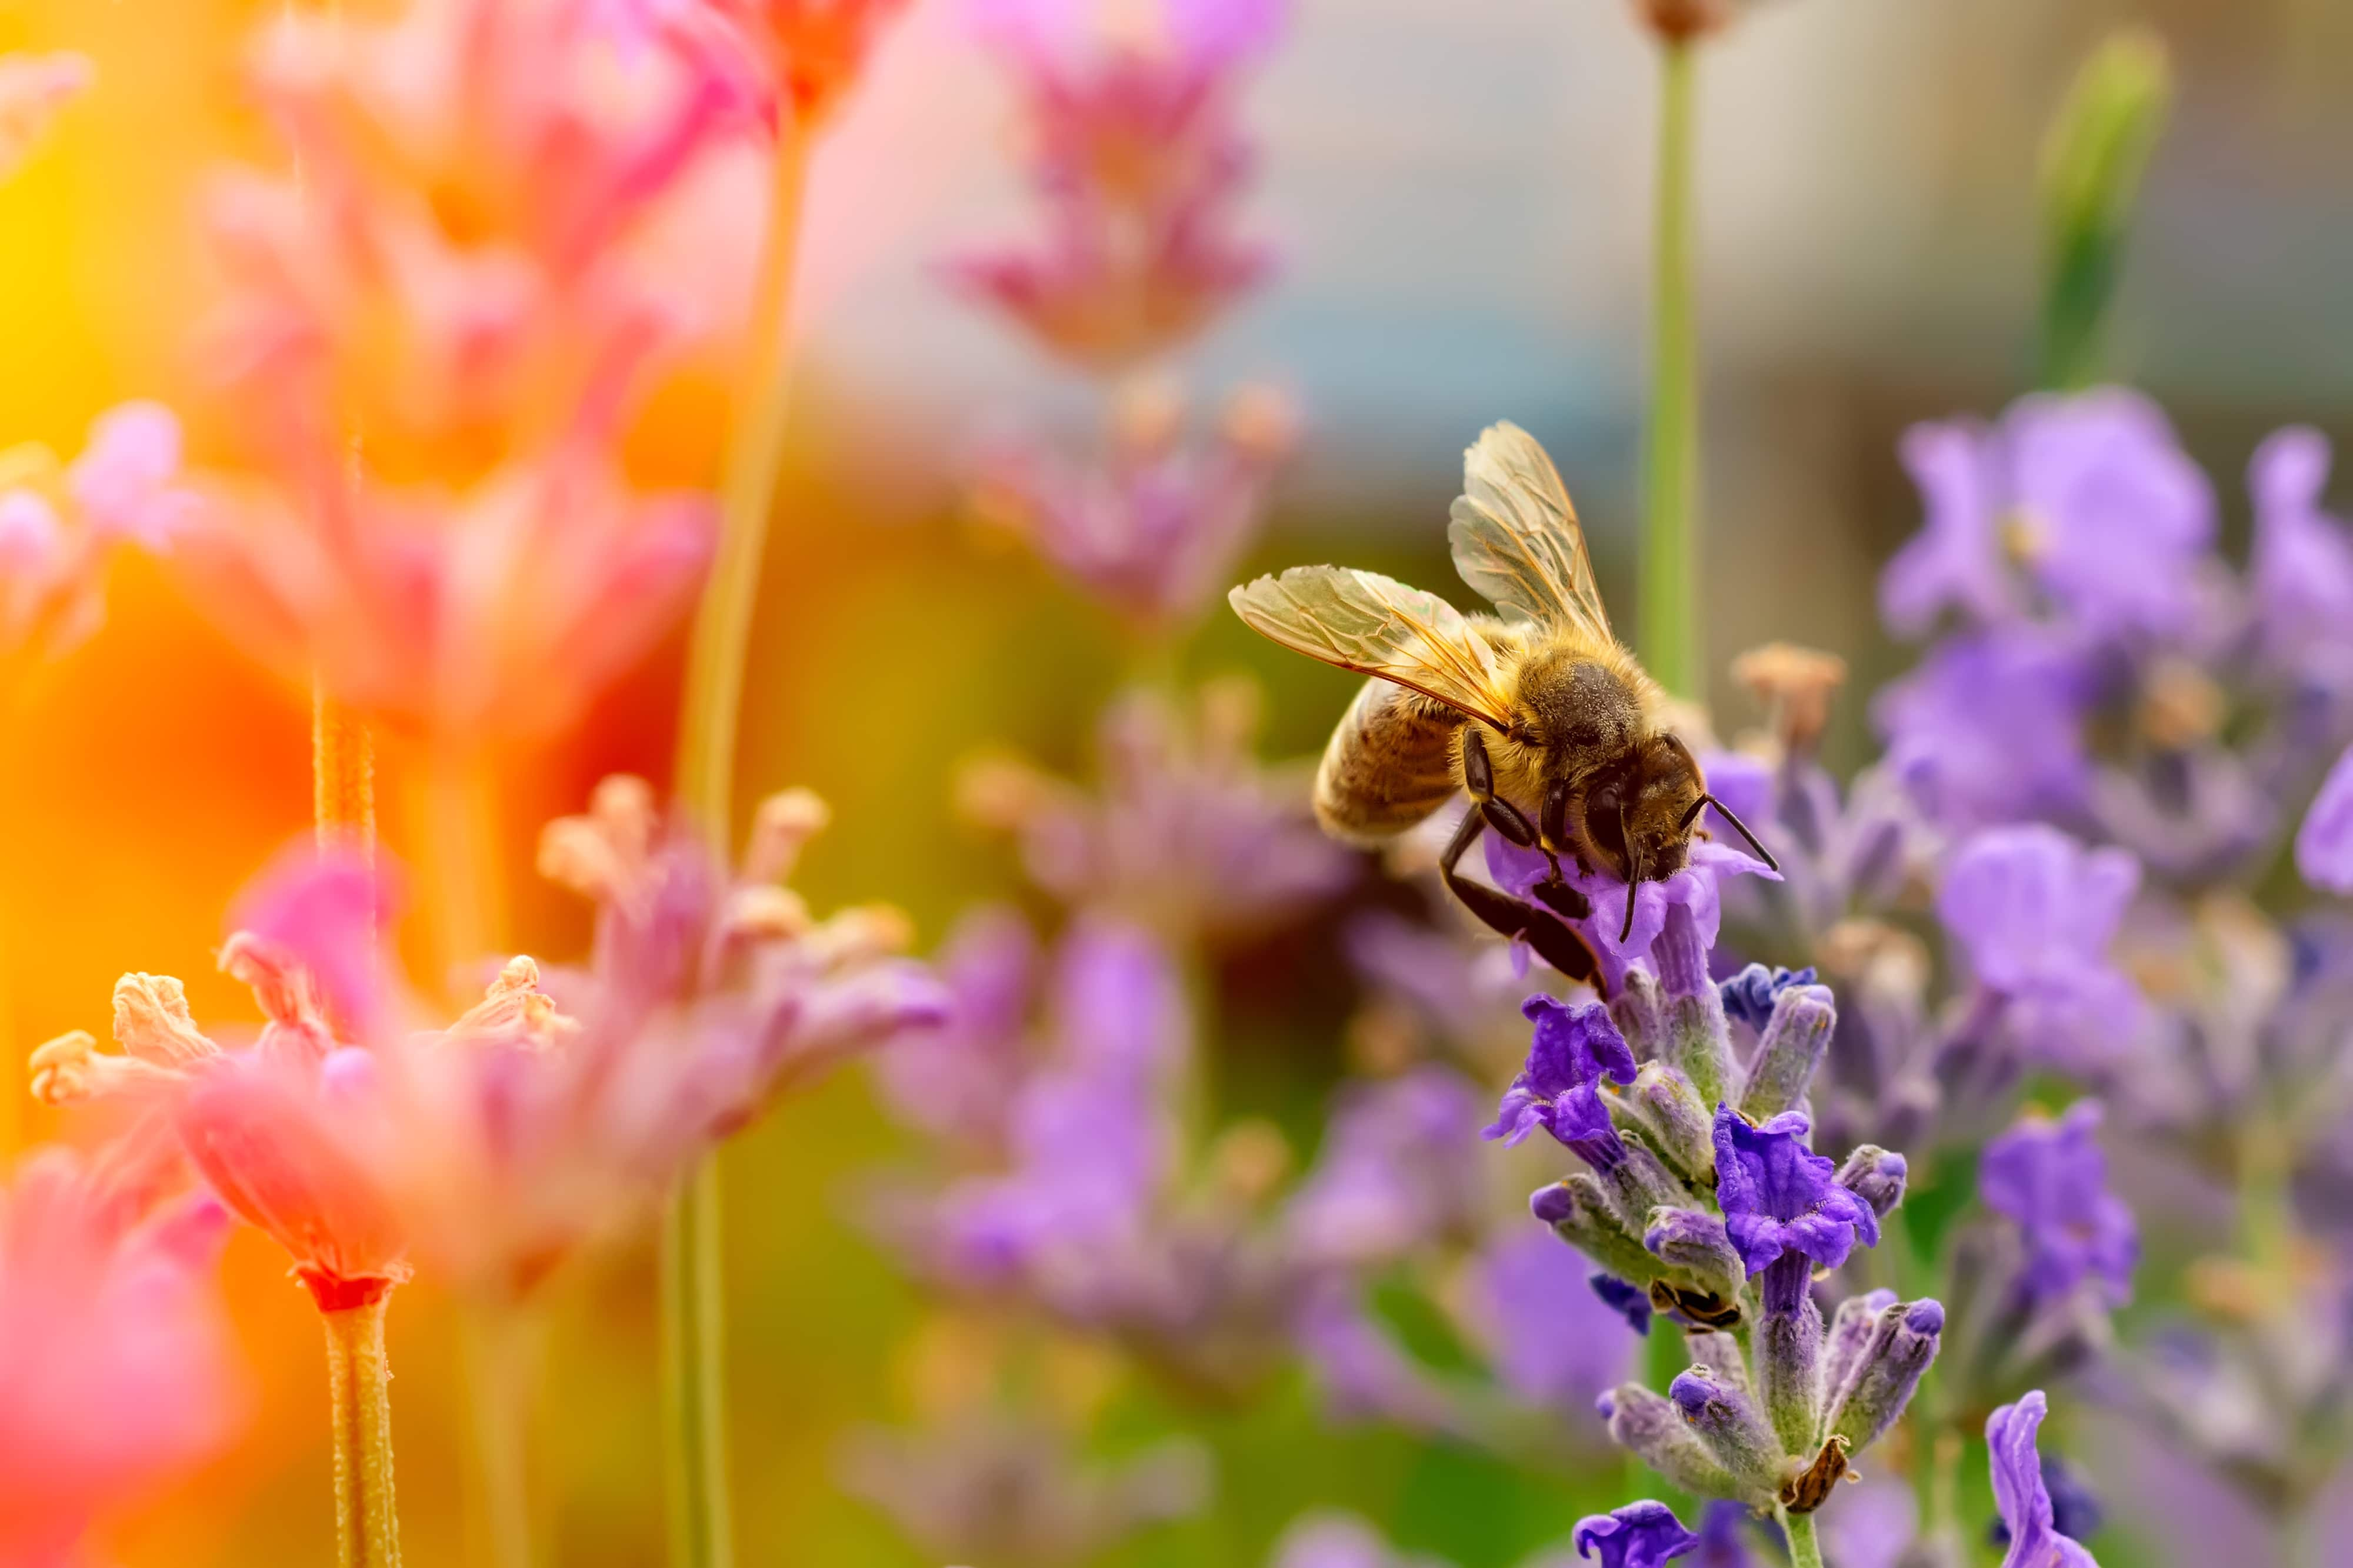 The bee pollinates the lavender flowers. Plant decay with insects